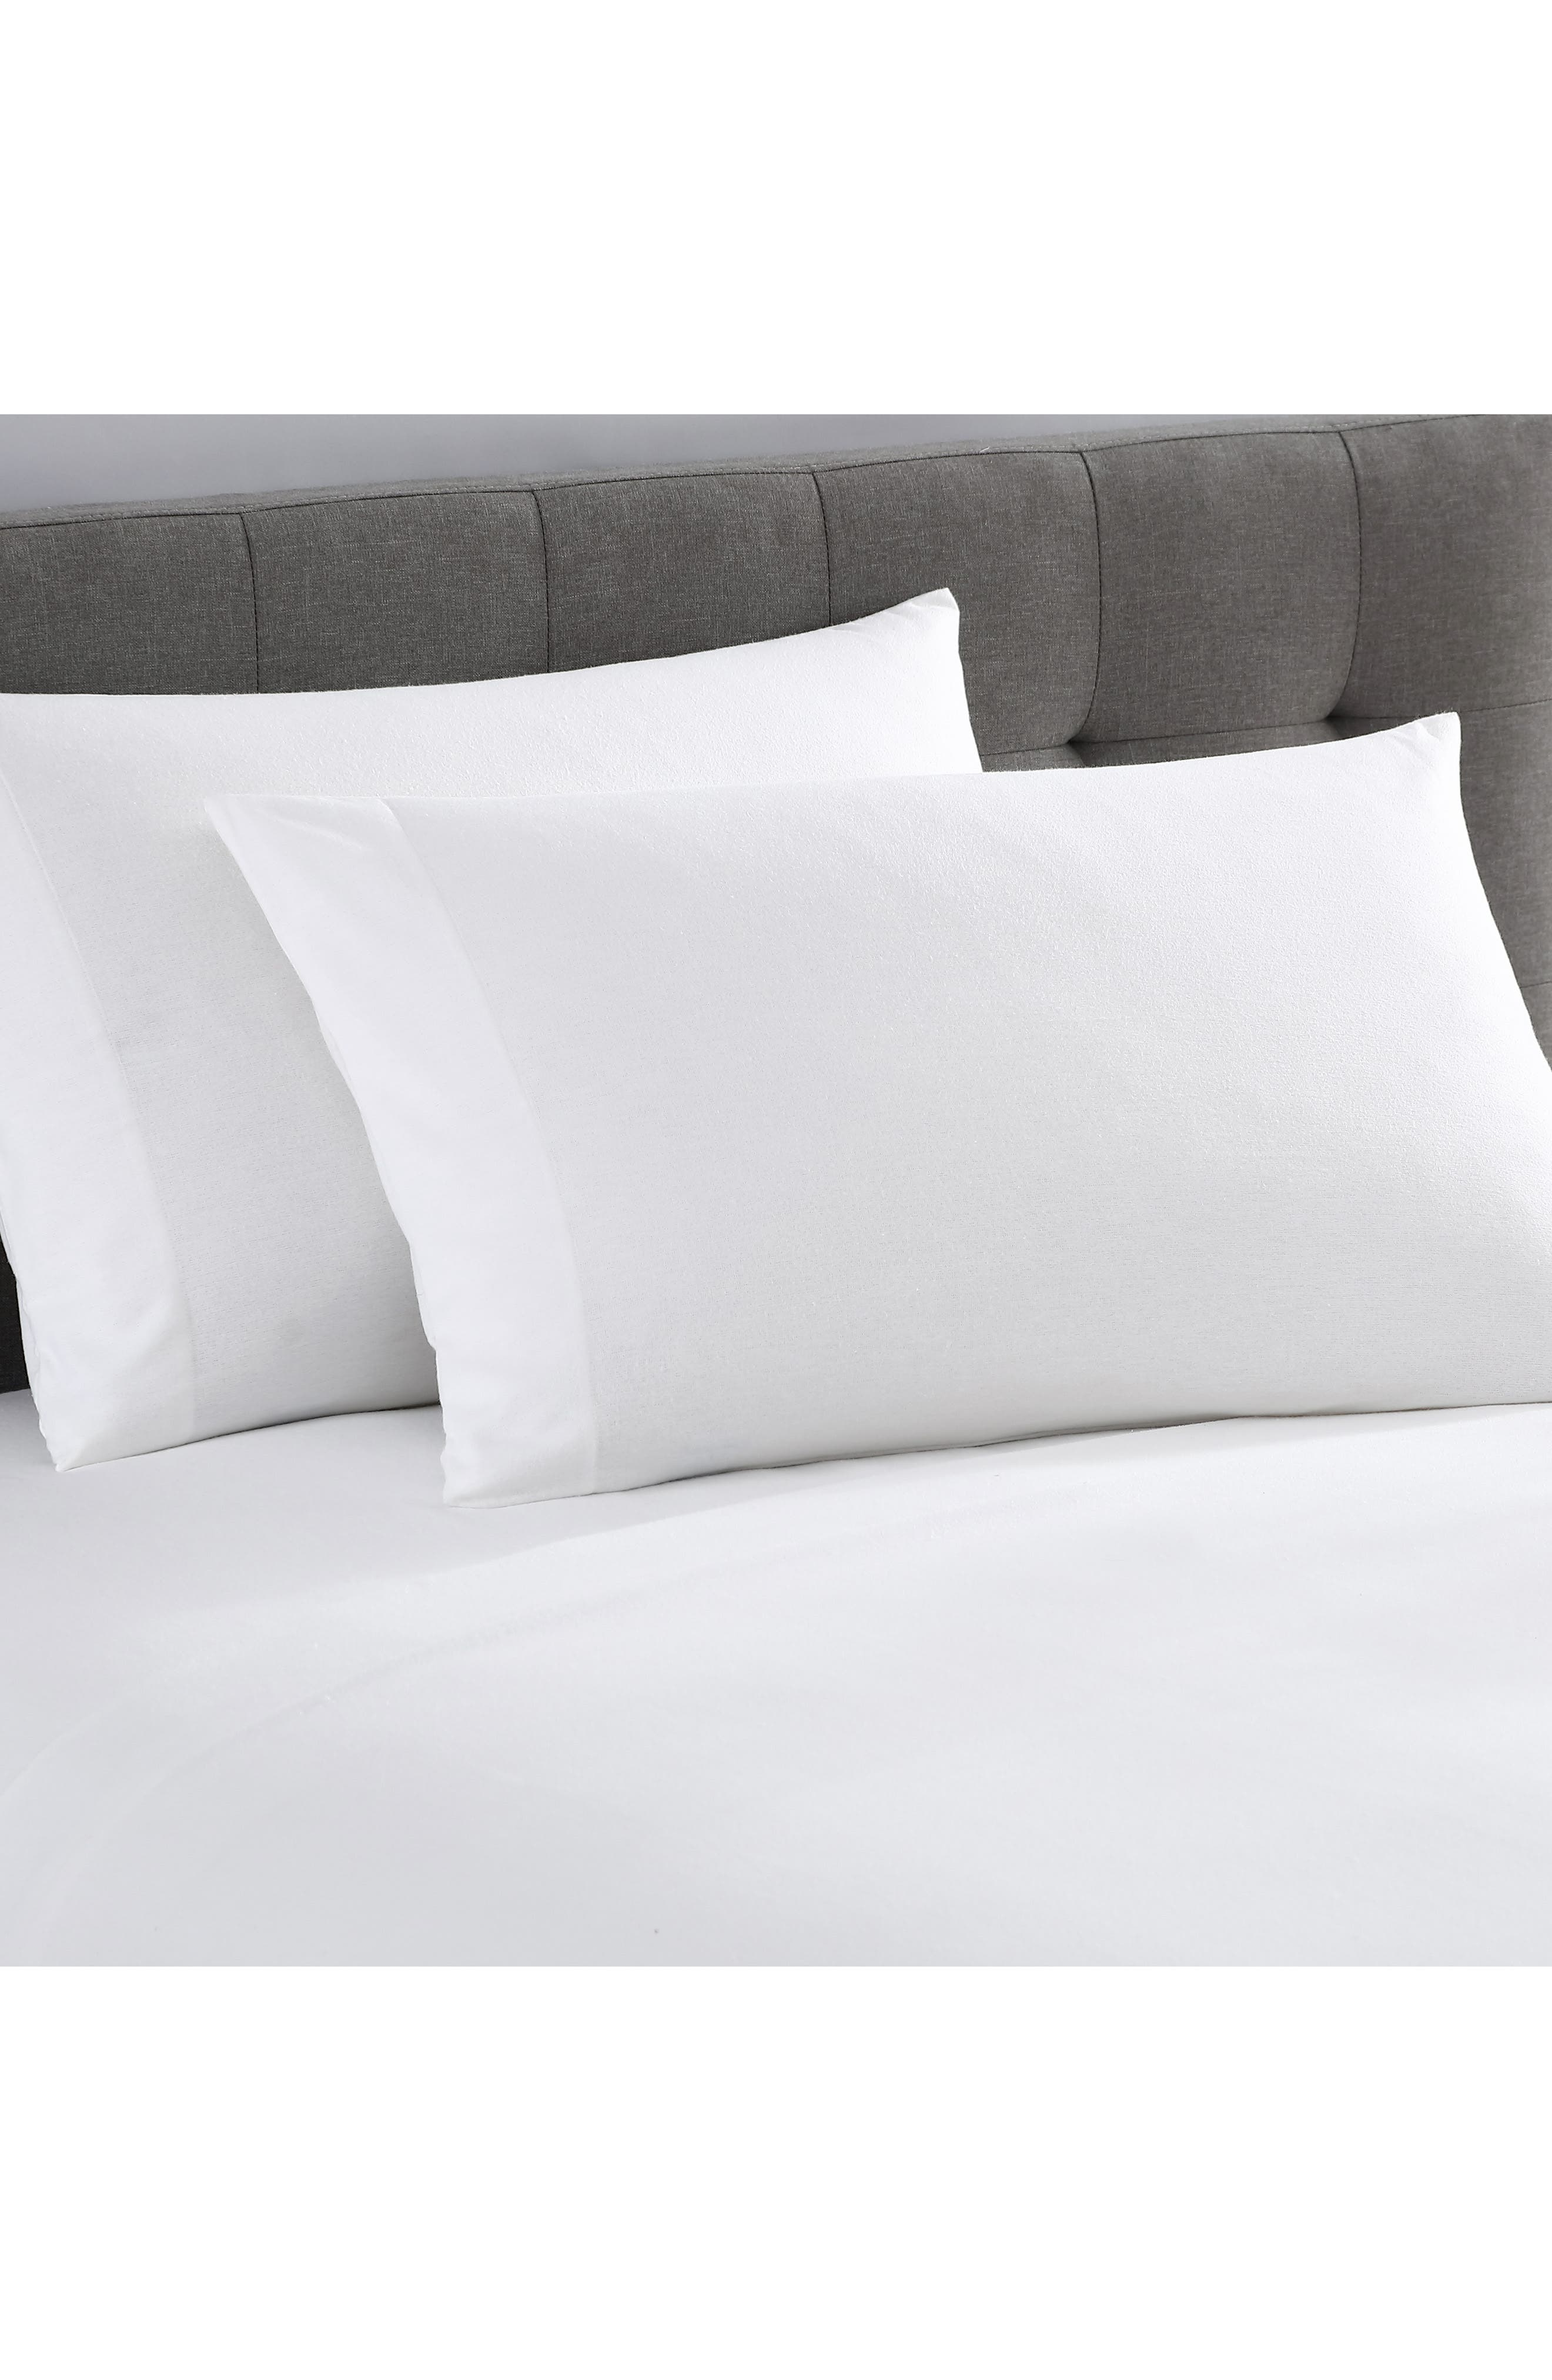 Matouk Pillowcases in Style Butterfield color Ocean Egyptian Cotton Retail $144